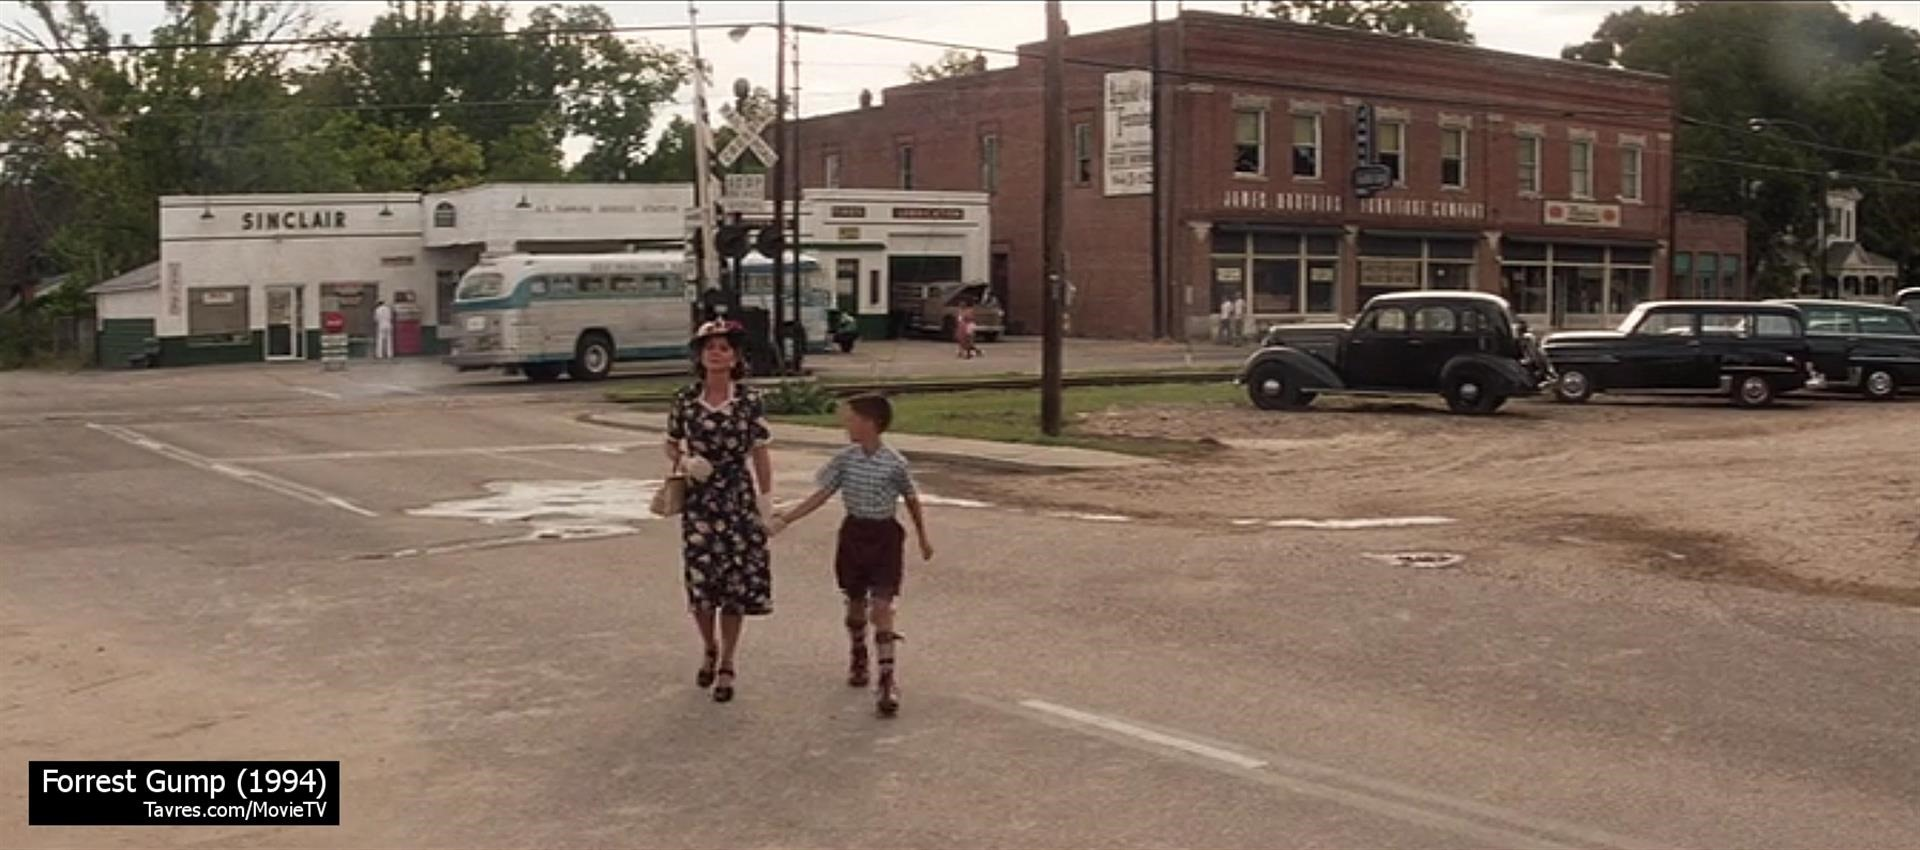 Forrest Gump (1994) - Main Street Greenbow 1955   Movie & TV Locations